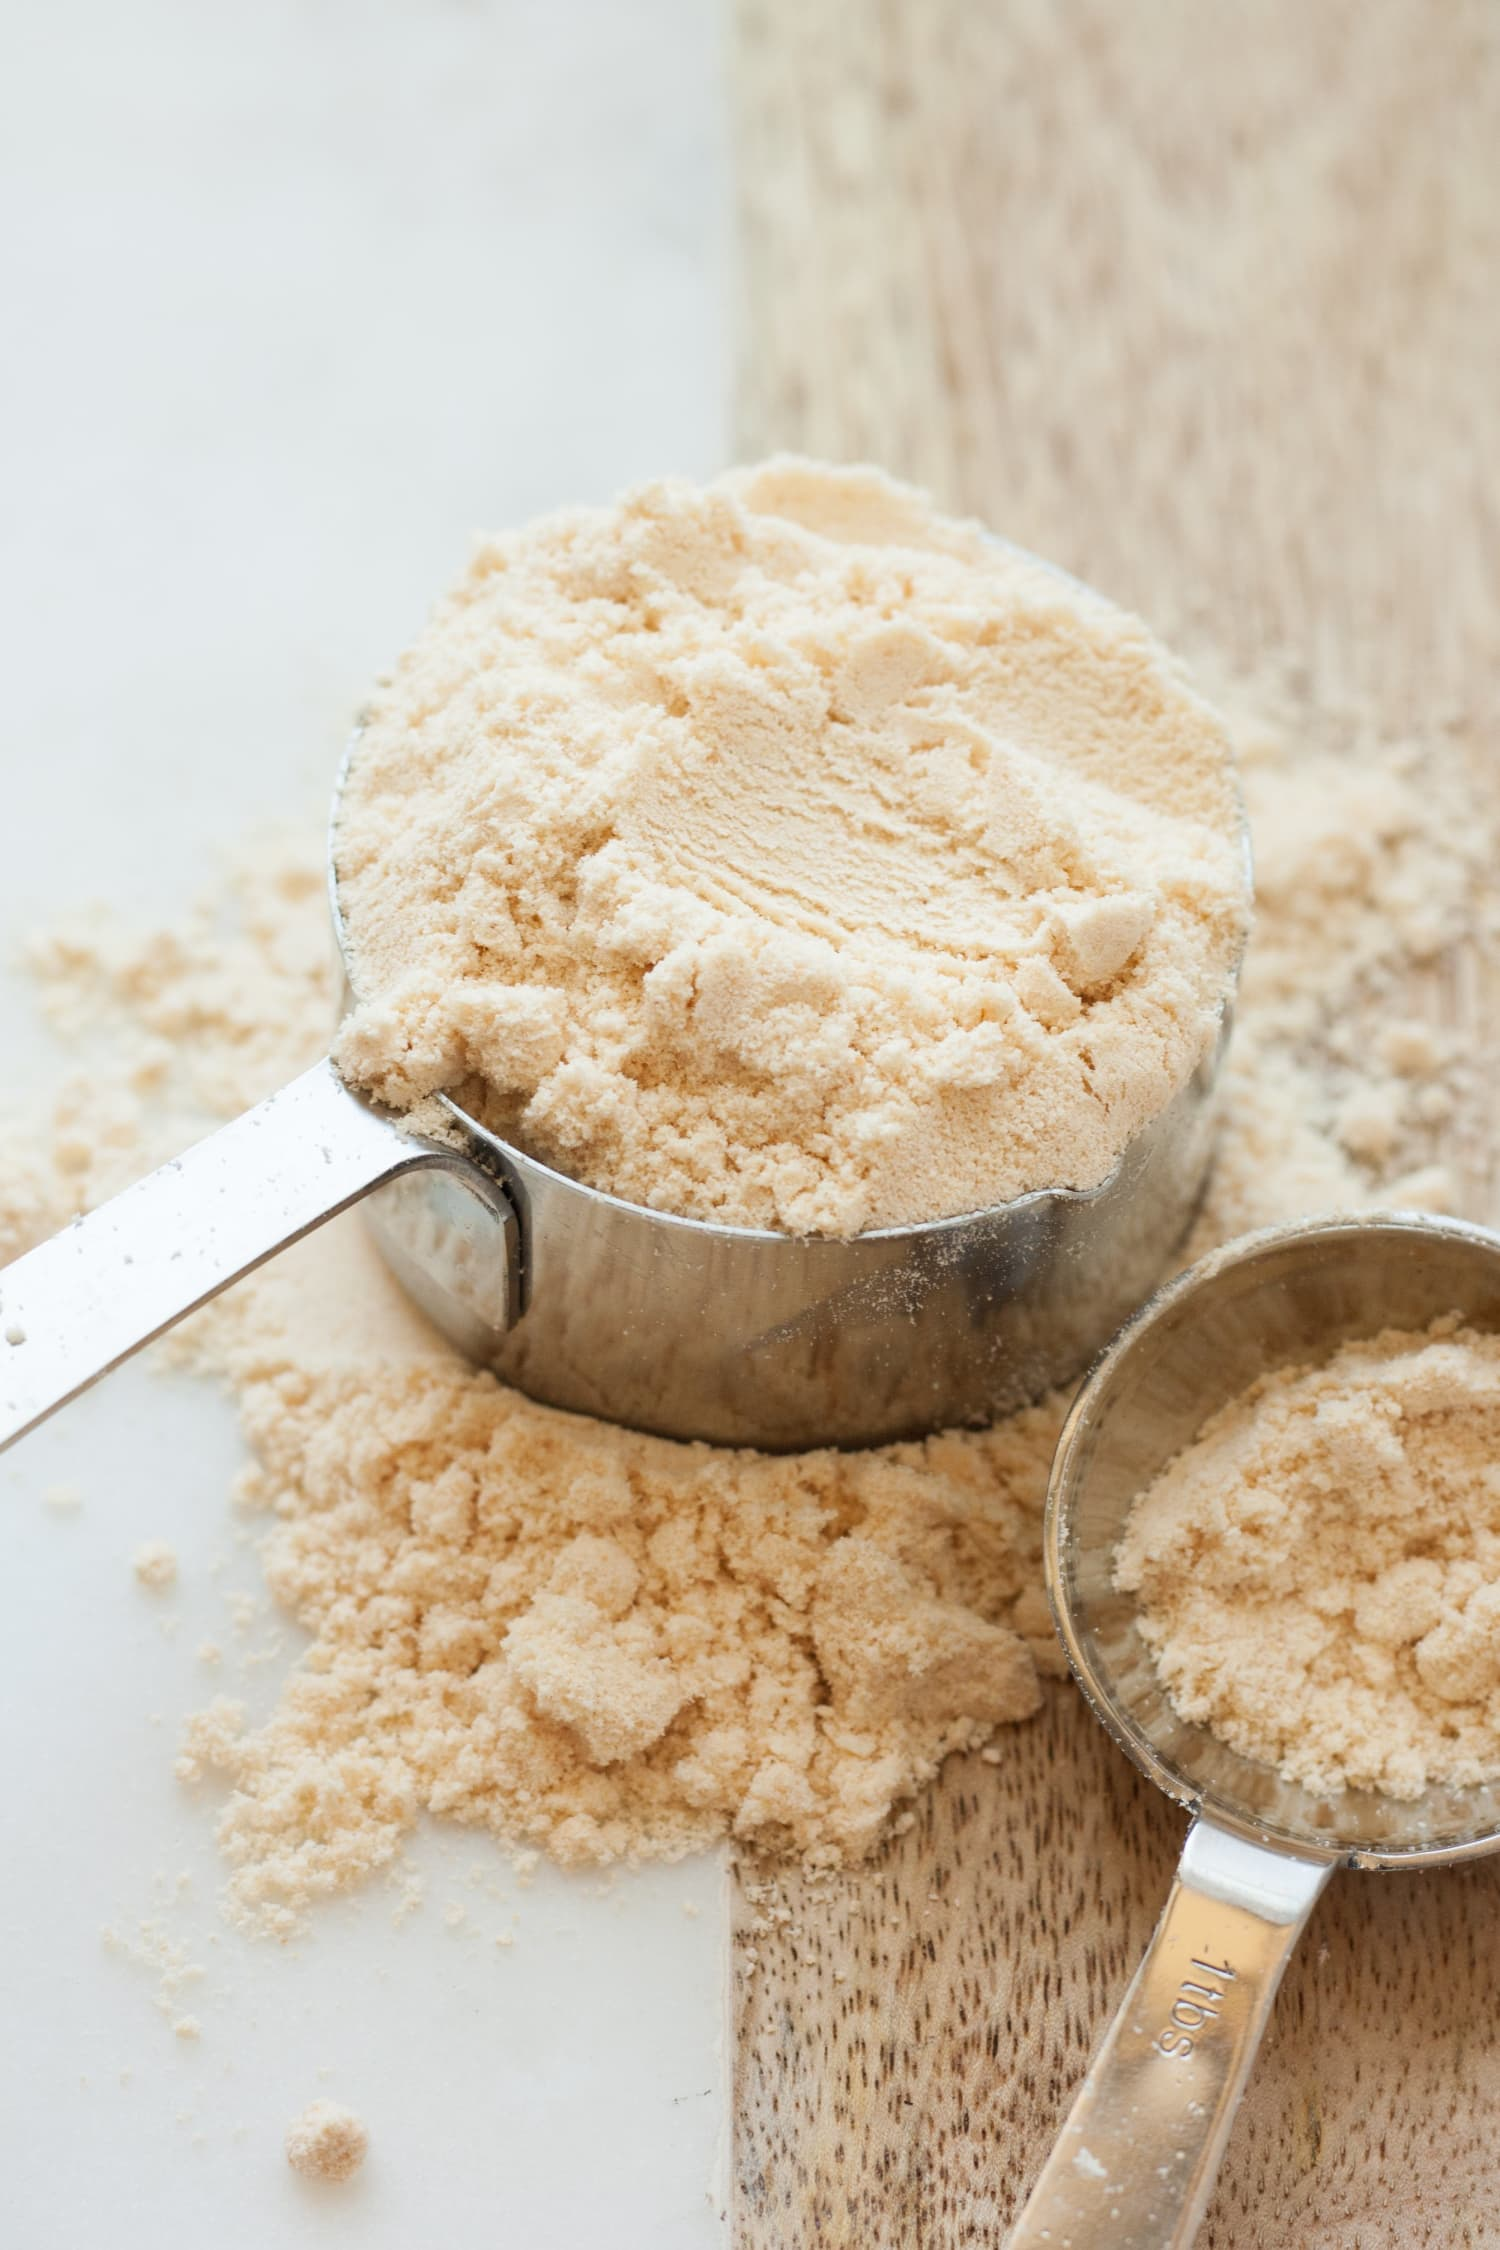 16 Gluten-Free Flours (and the Best Times to Use Them)